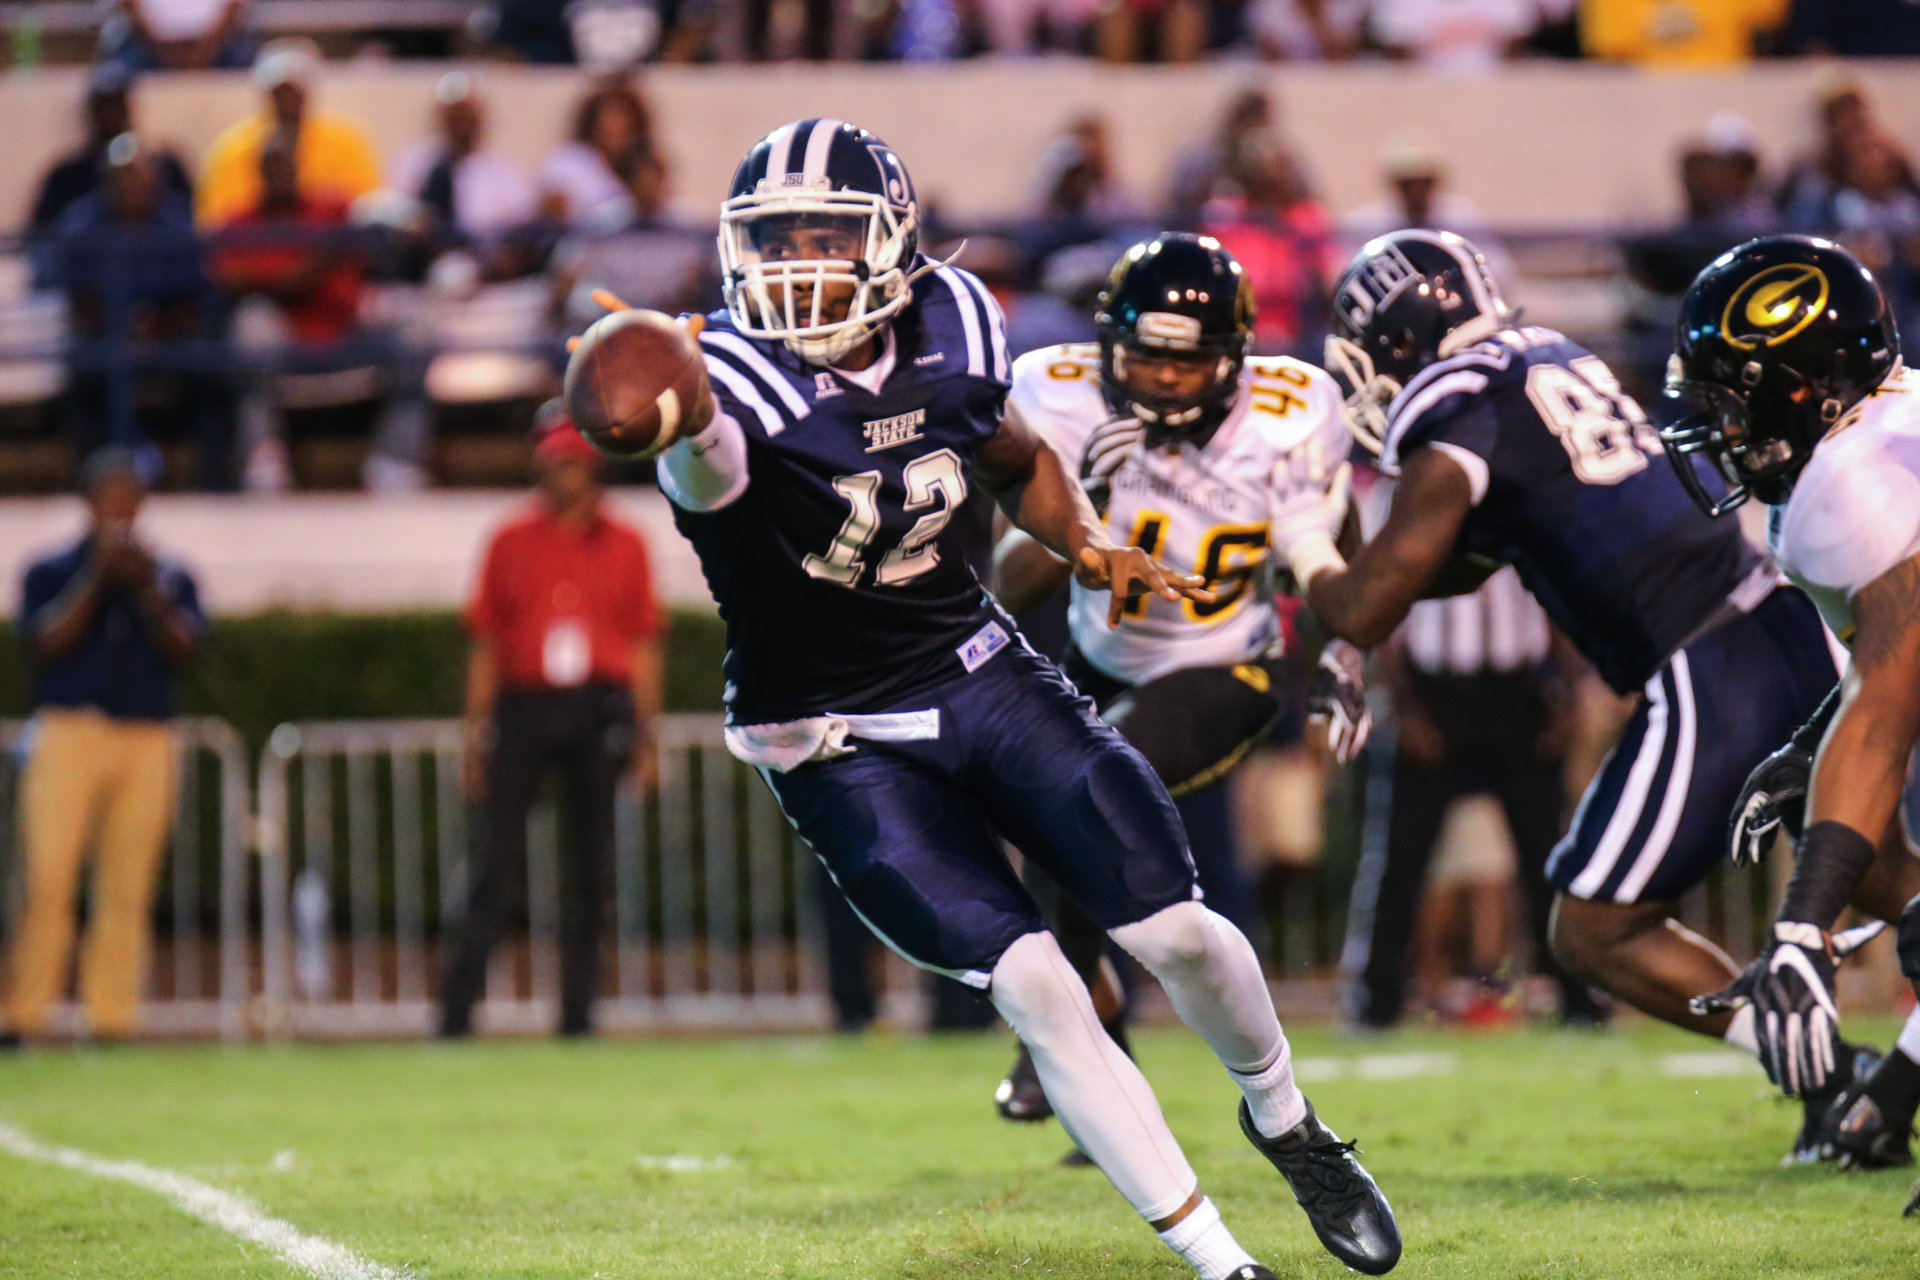 Football falls 35-14 to Grambling State in Home Opener